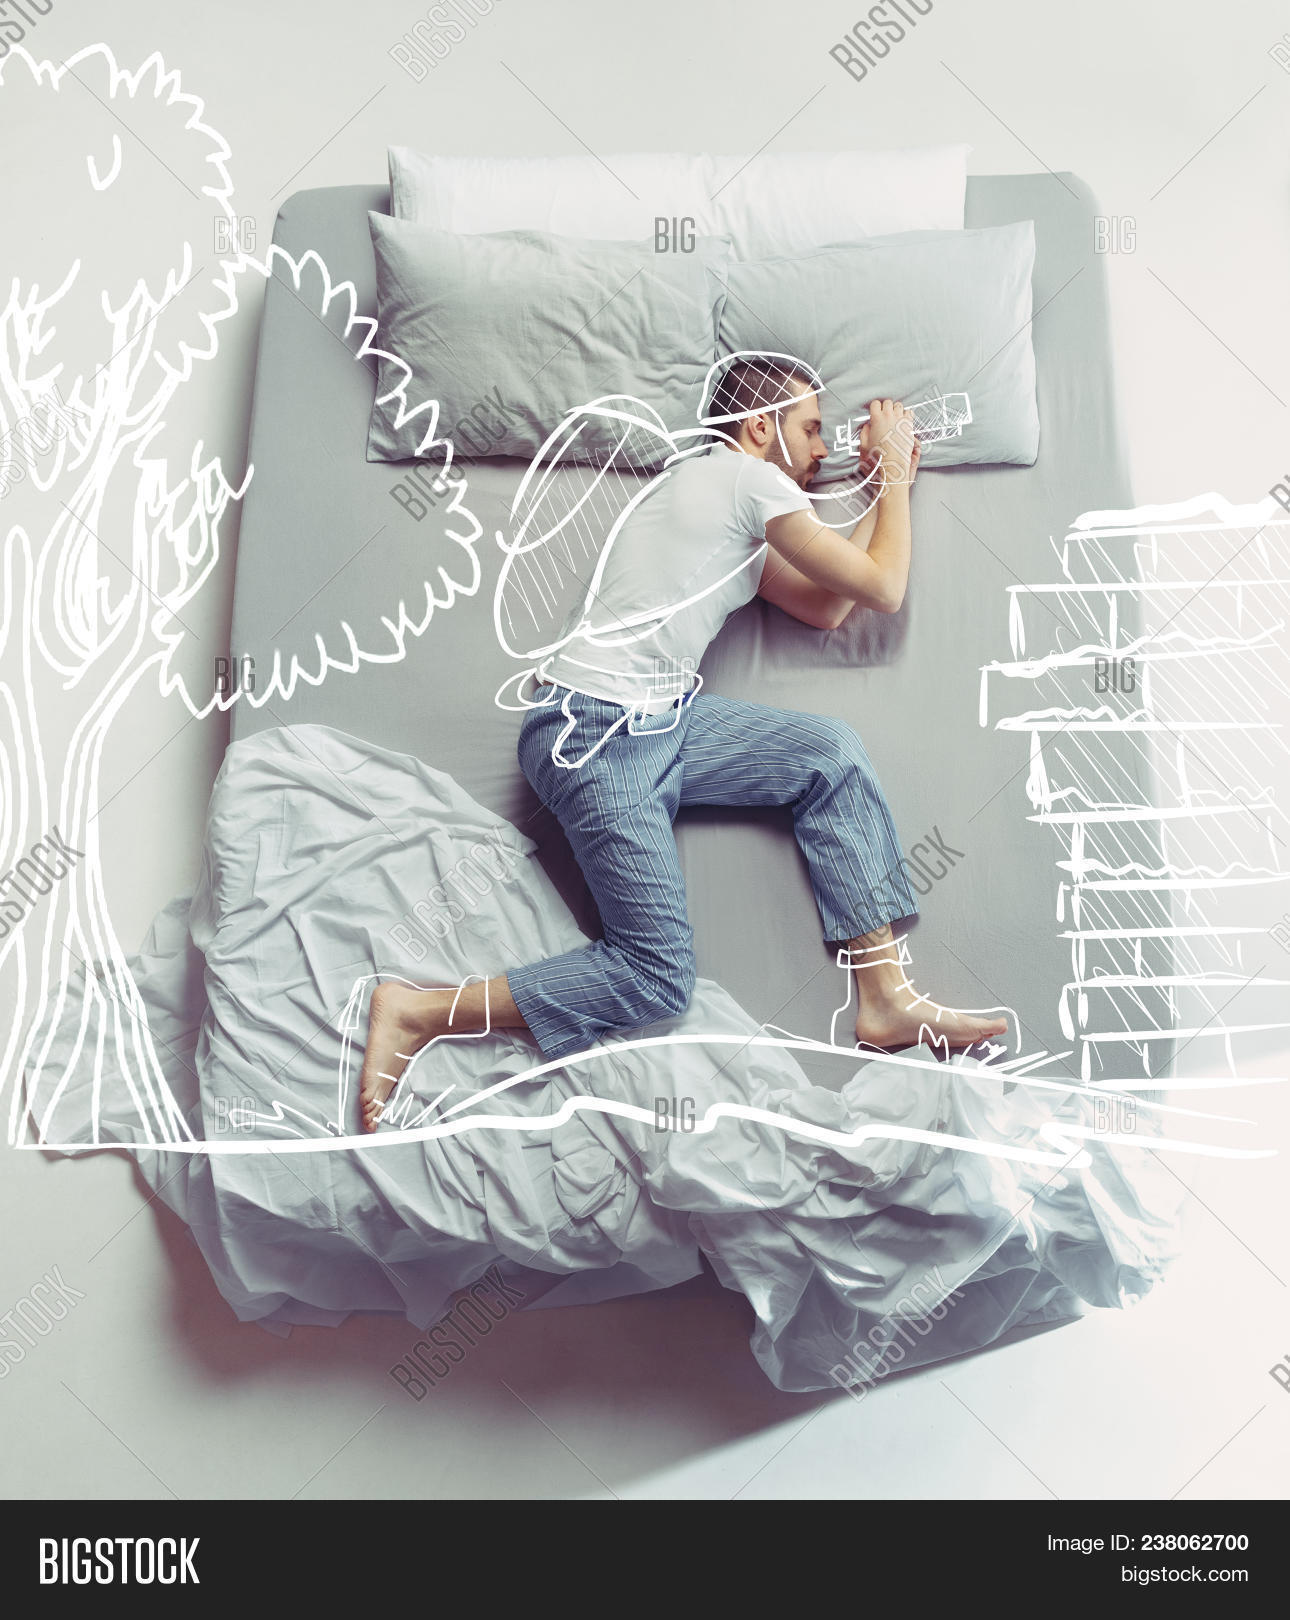 adult,ambition,ambush,bed,bedroom,bedtime,binoculars,caucasian,comfortable,concept,conceptual,creativity,desire,drawing,dream,dreaming,fantasize,guide,handsome,home,imagine,inspiration,lifestyle,lying,male,man,military,morning,night,one,painted,people,person,pillow,prospector,relaxation,rest,resting,scout,sleep,sleeping,stealth,top,tree,view,vision,wait,young